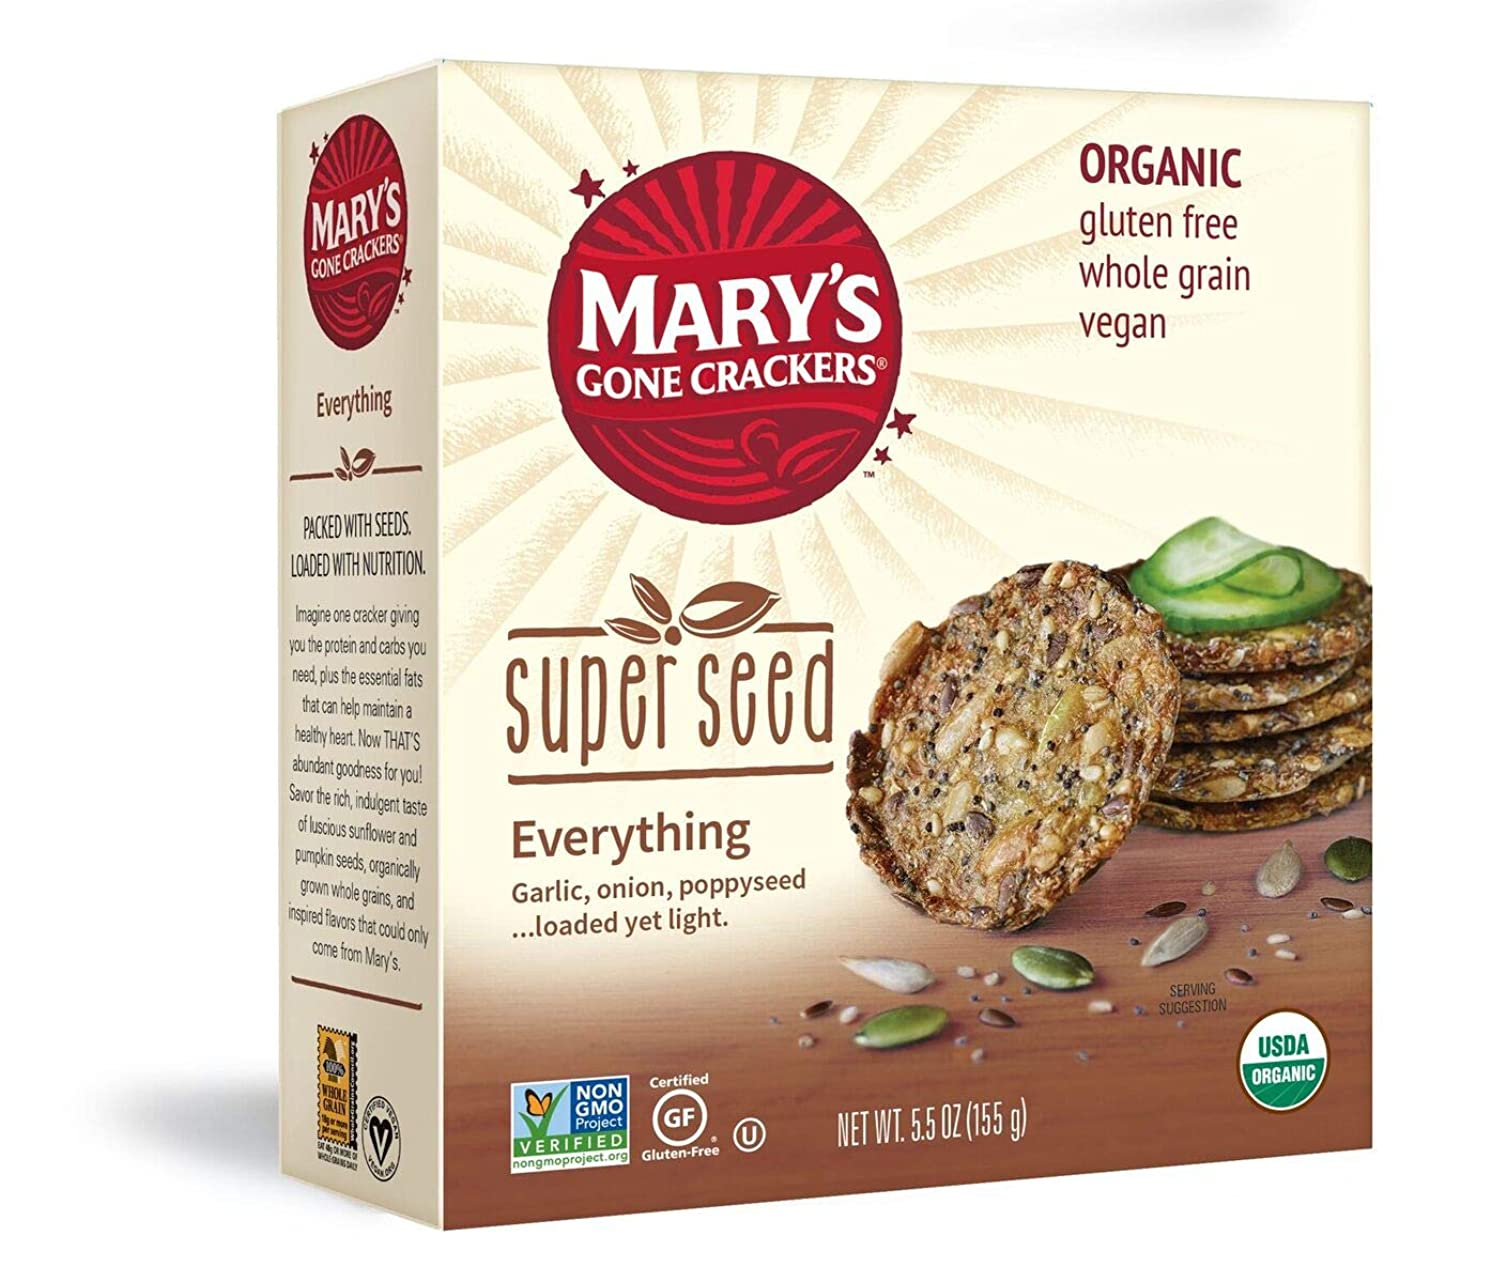 Mary's Gone Crackers Super Seed Crackers, 5g of Organic Plant Based Protein, Gluten Free, Everything, 5.5 Ounce (Pack of 1)